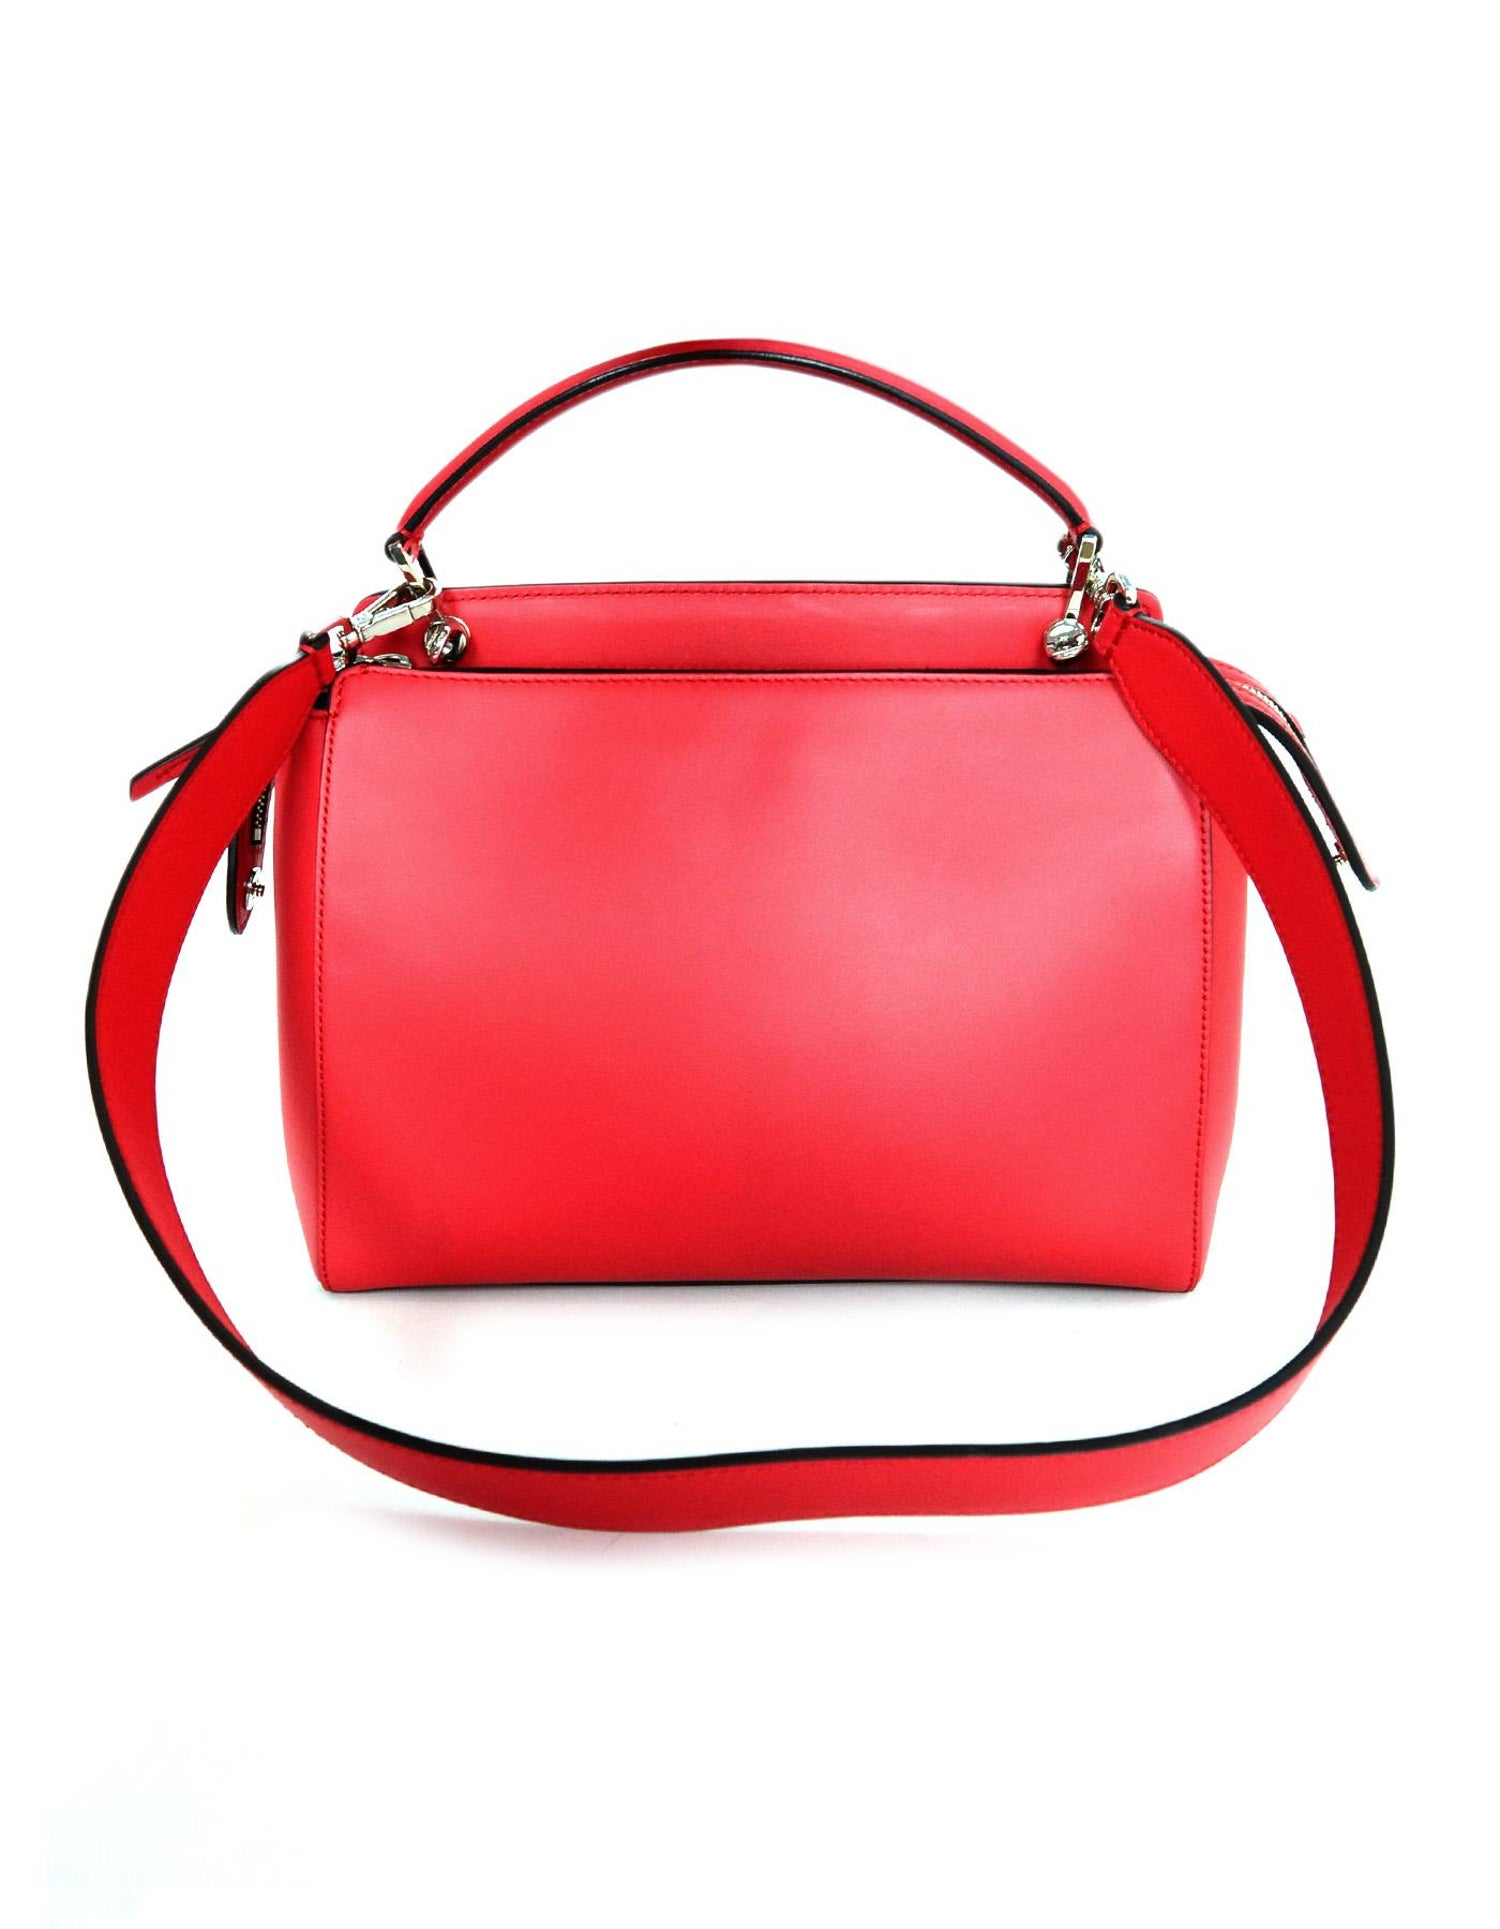 74282c2f7bd3 Fendi Red Nappa Leather Whipstitch Fashion Show Dotcom Satchel Bag w  Strap For  Sale at 1stdibs